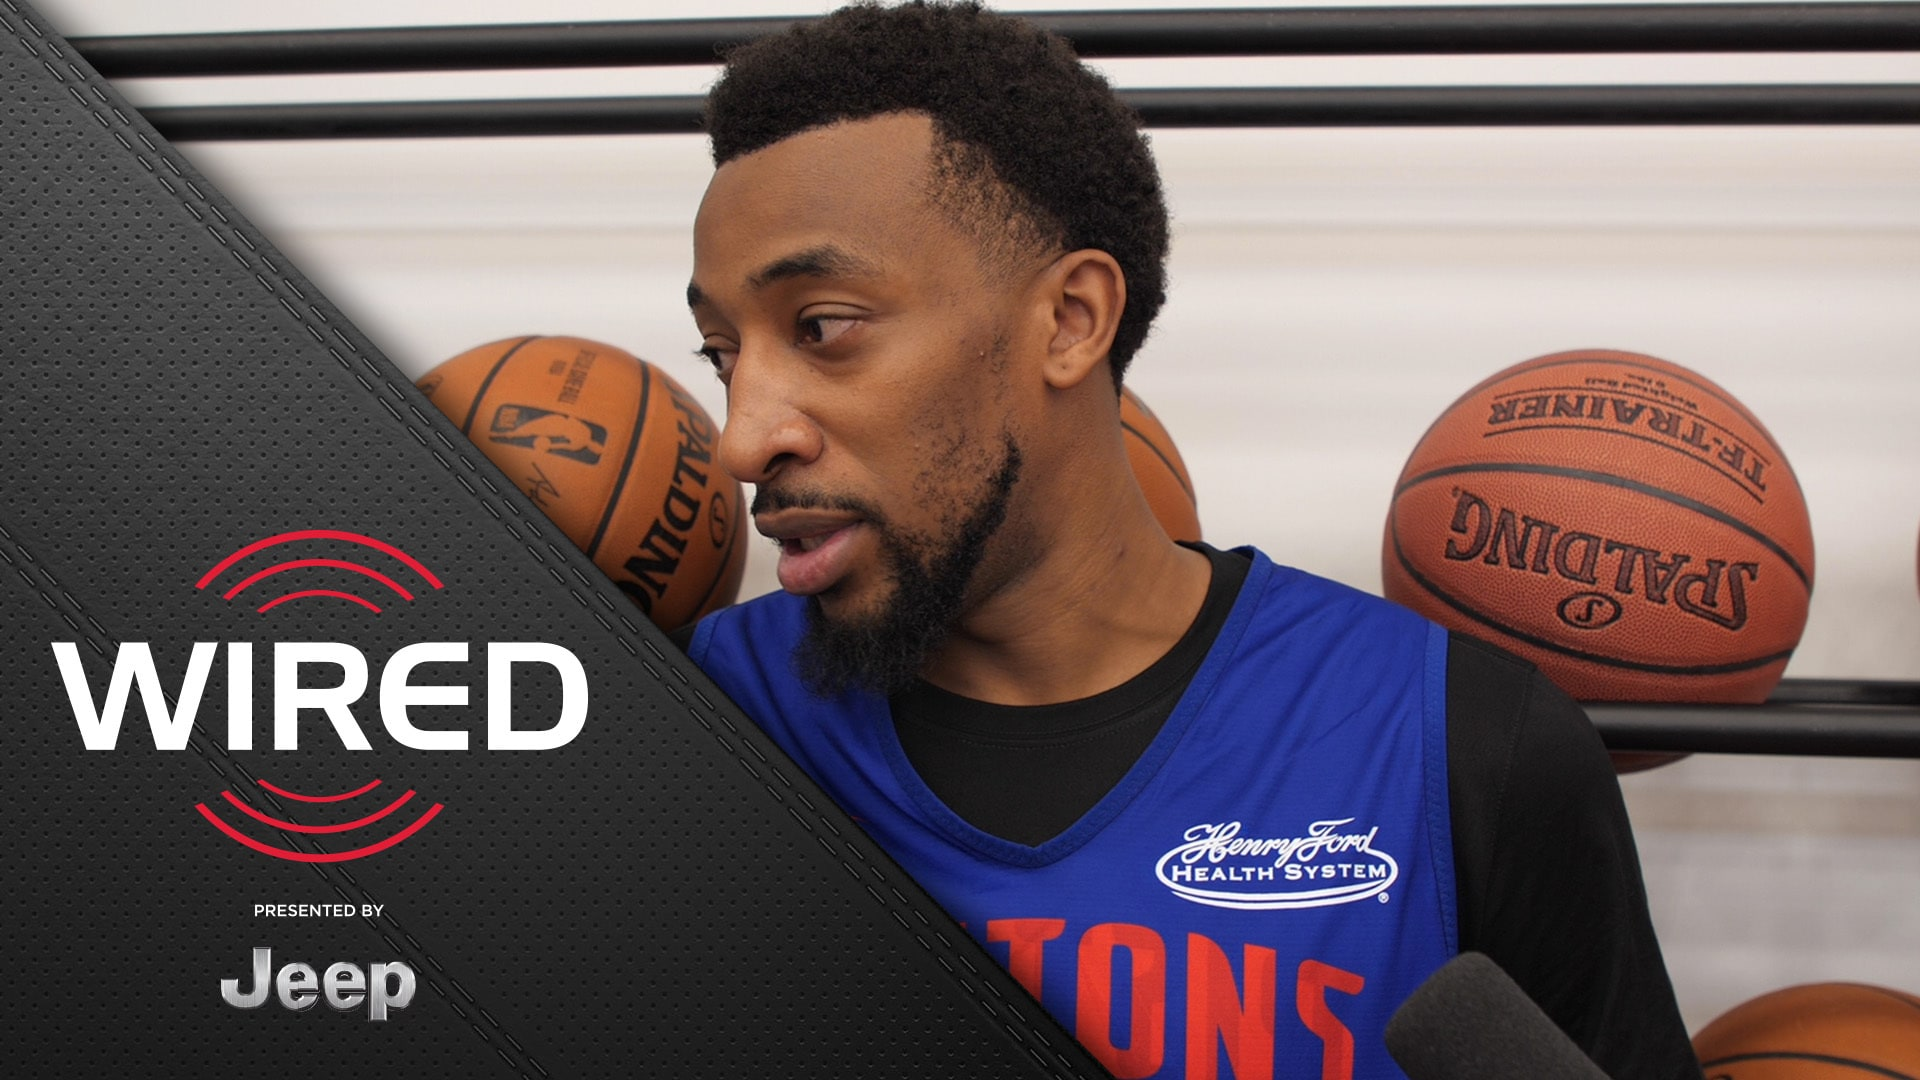 Wired, presented by Jeep: Jordan McRae Speaks After Practice